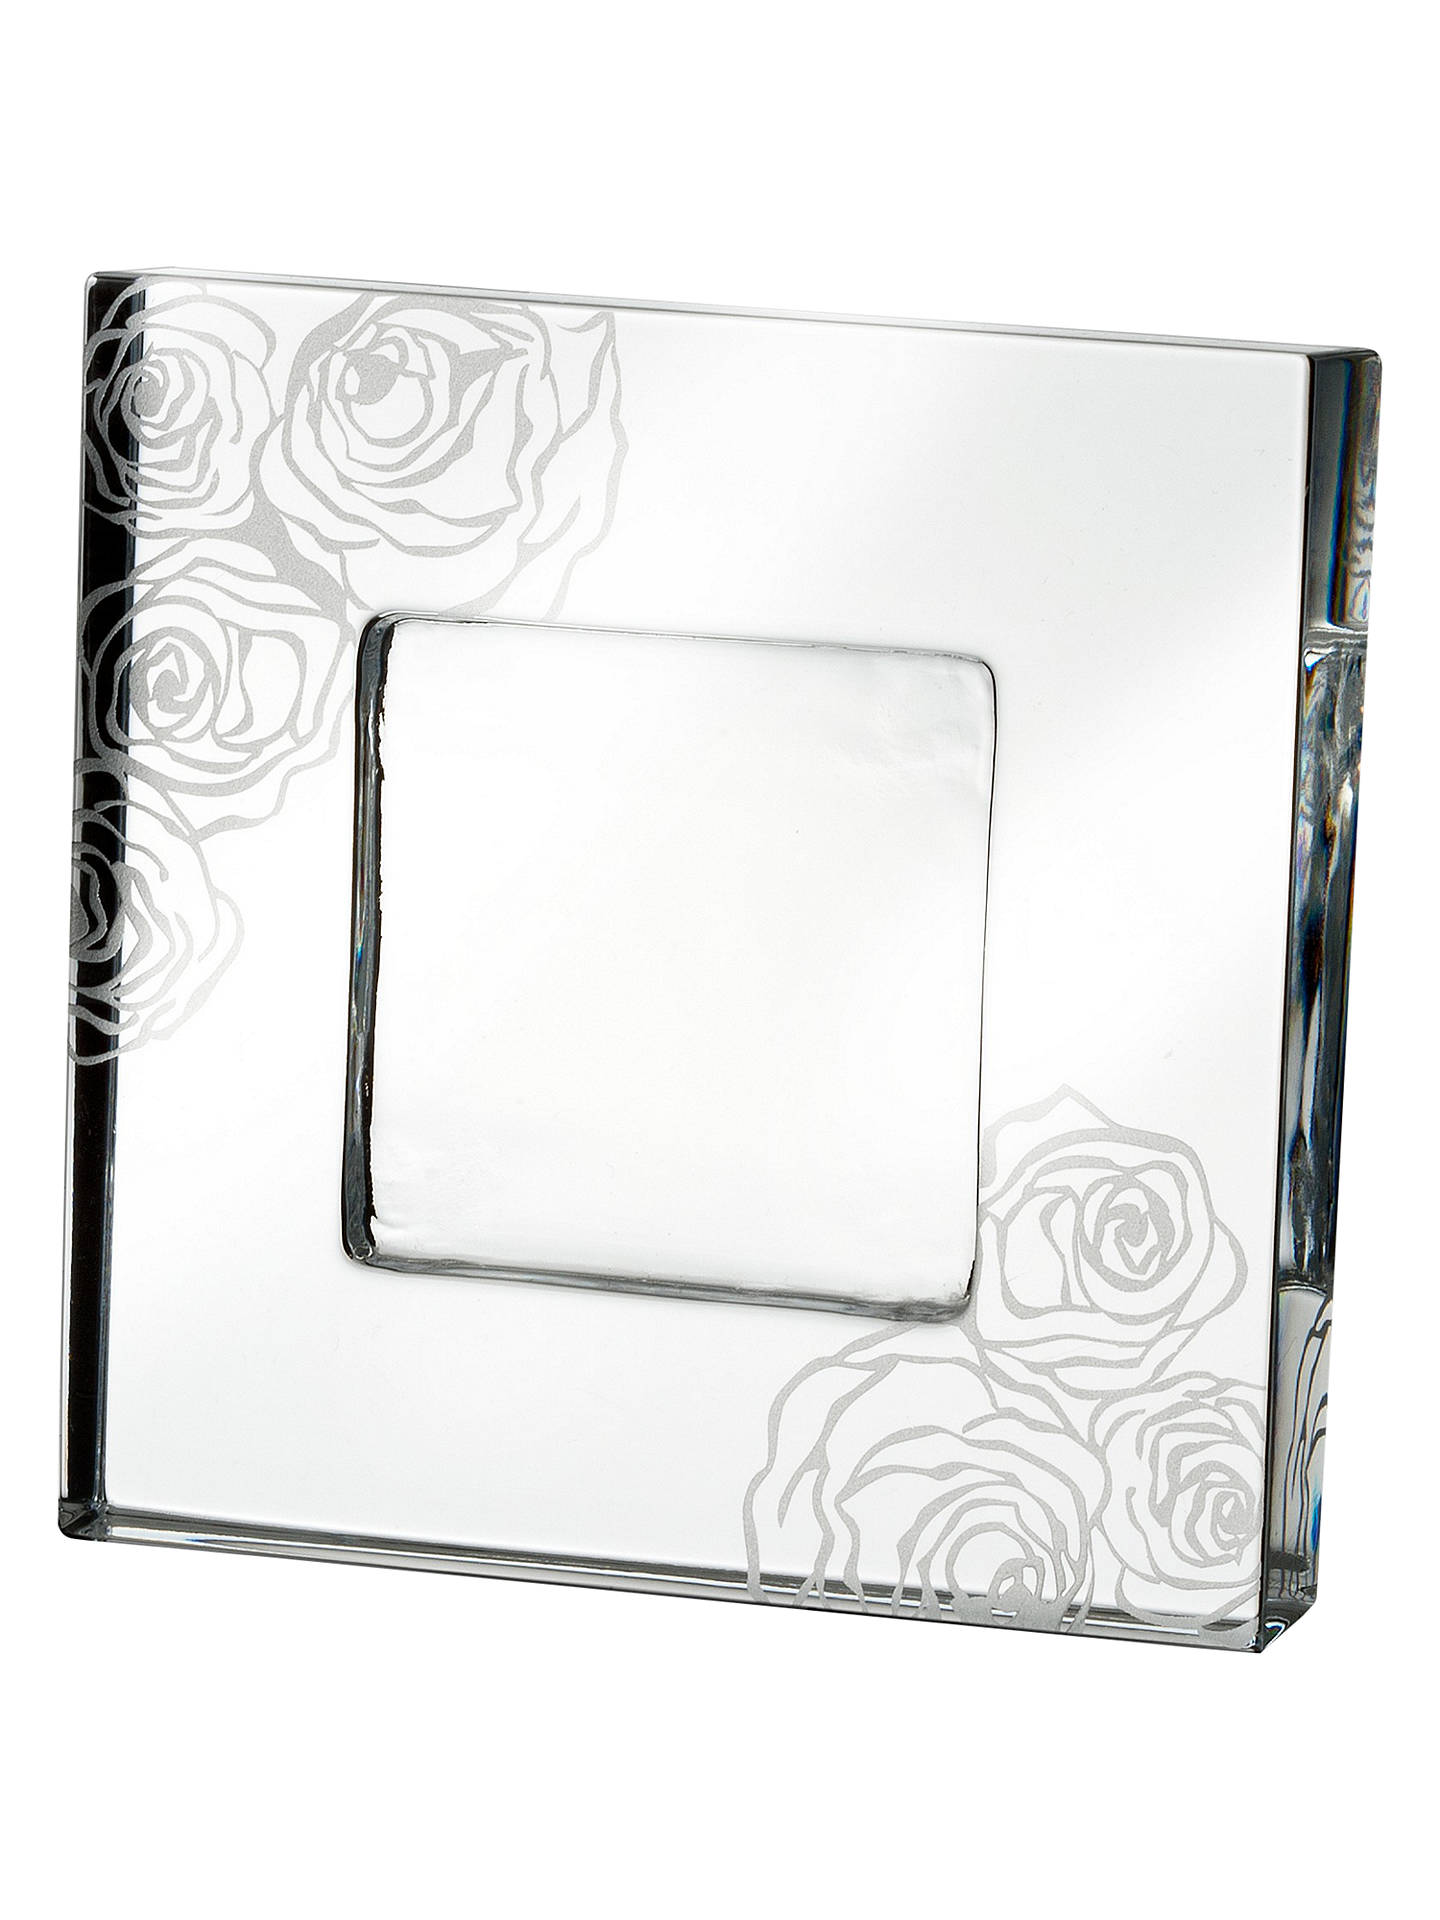 Monique Lhuillier for Waterford Sunday Rose Frame, 2 x 2\